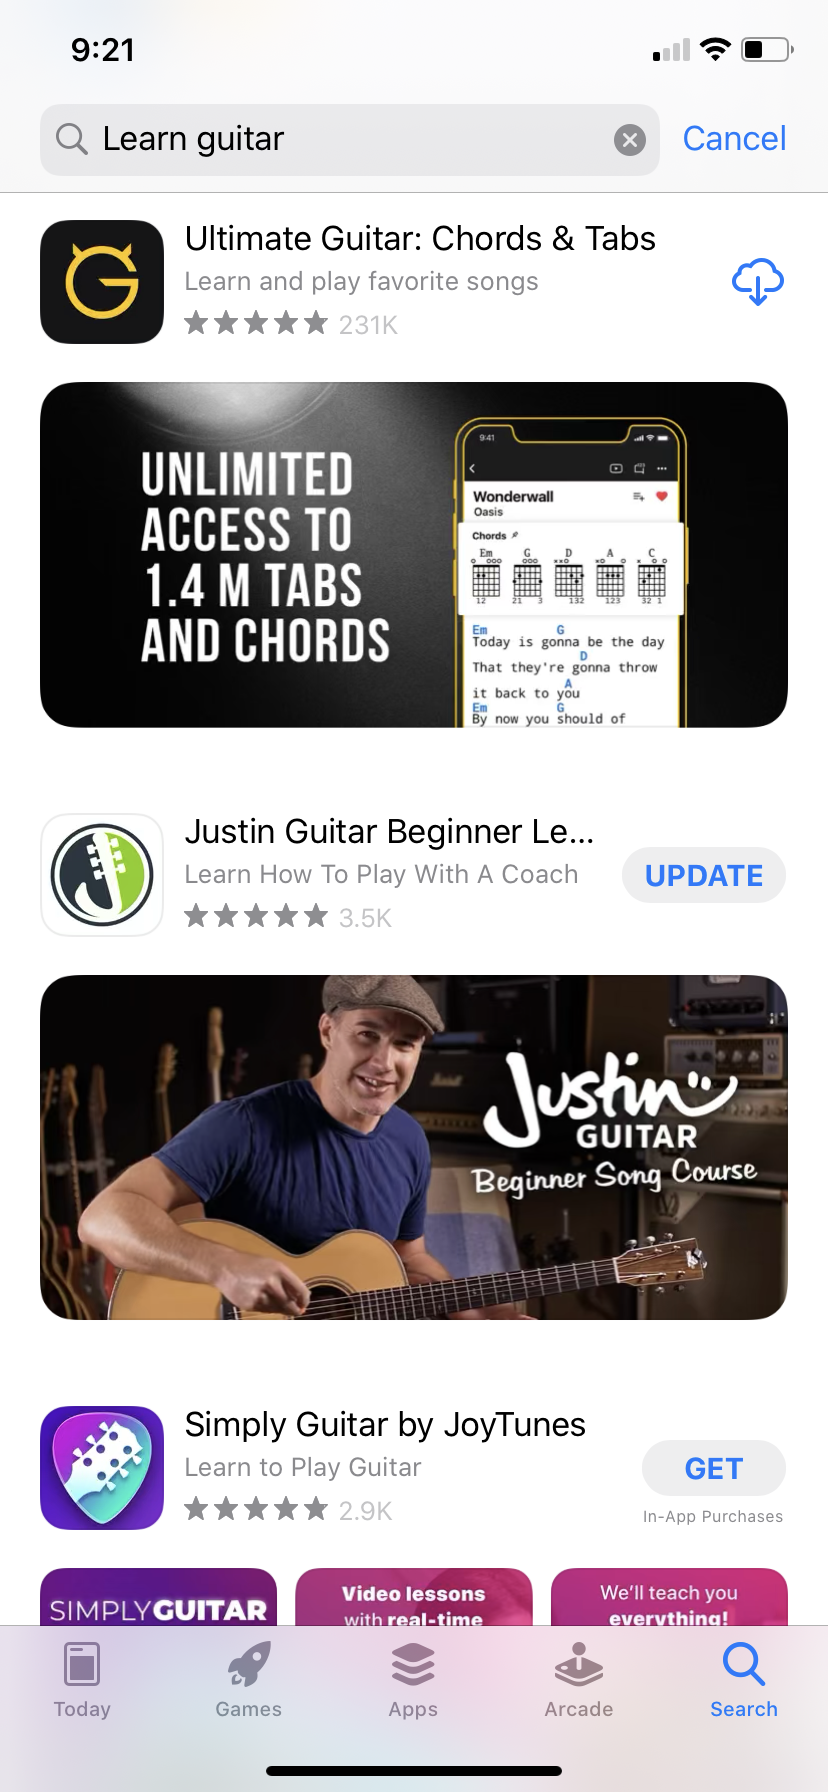 Searching for a Guitar Learning App